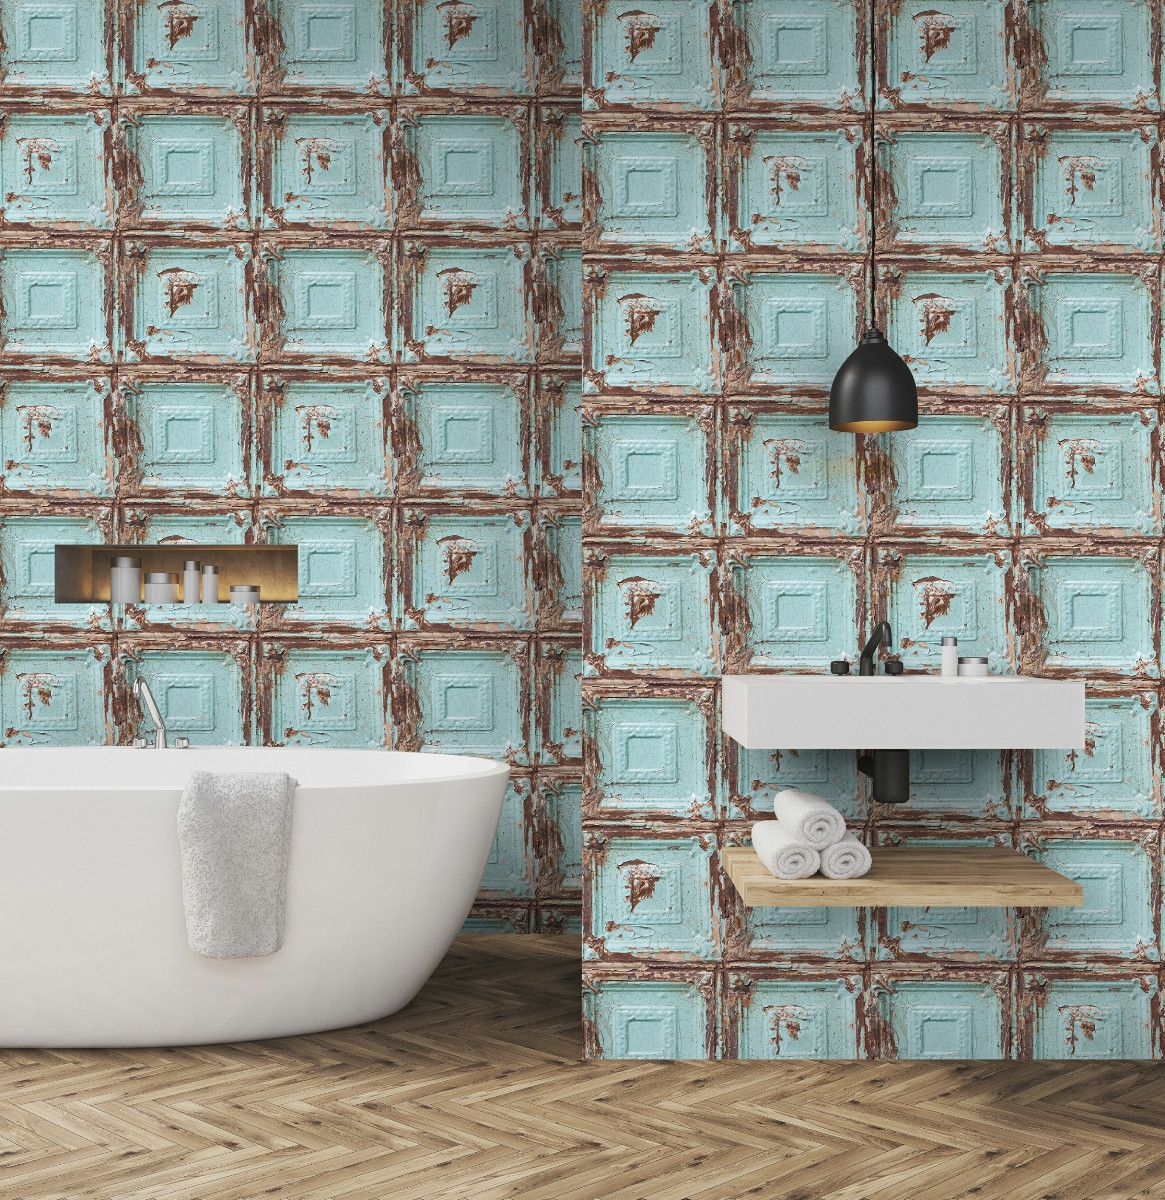 Turquoise And Brown Frame Square Wallpaper Blue Wallpapers Wallpaper Samples Removable Wallpaper